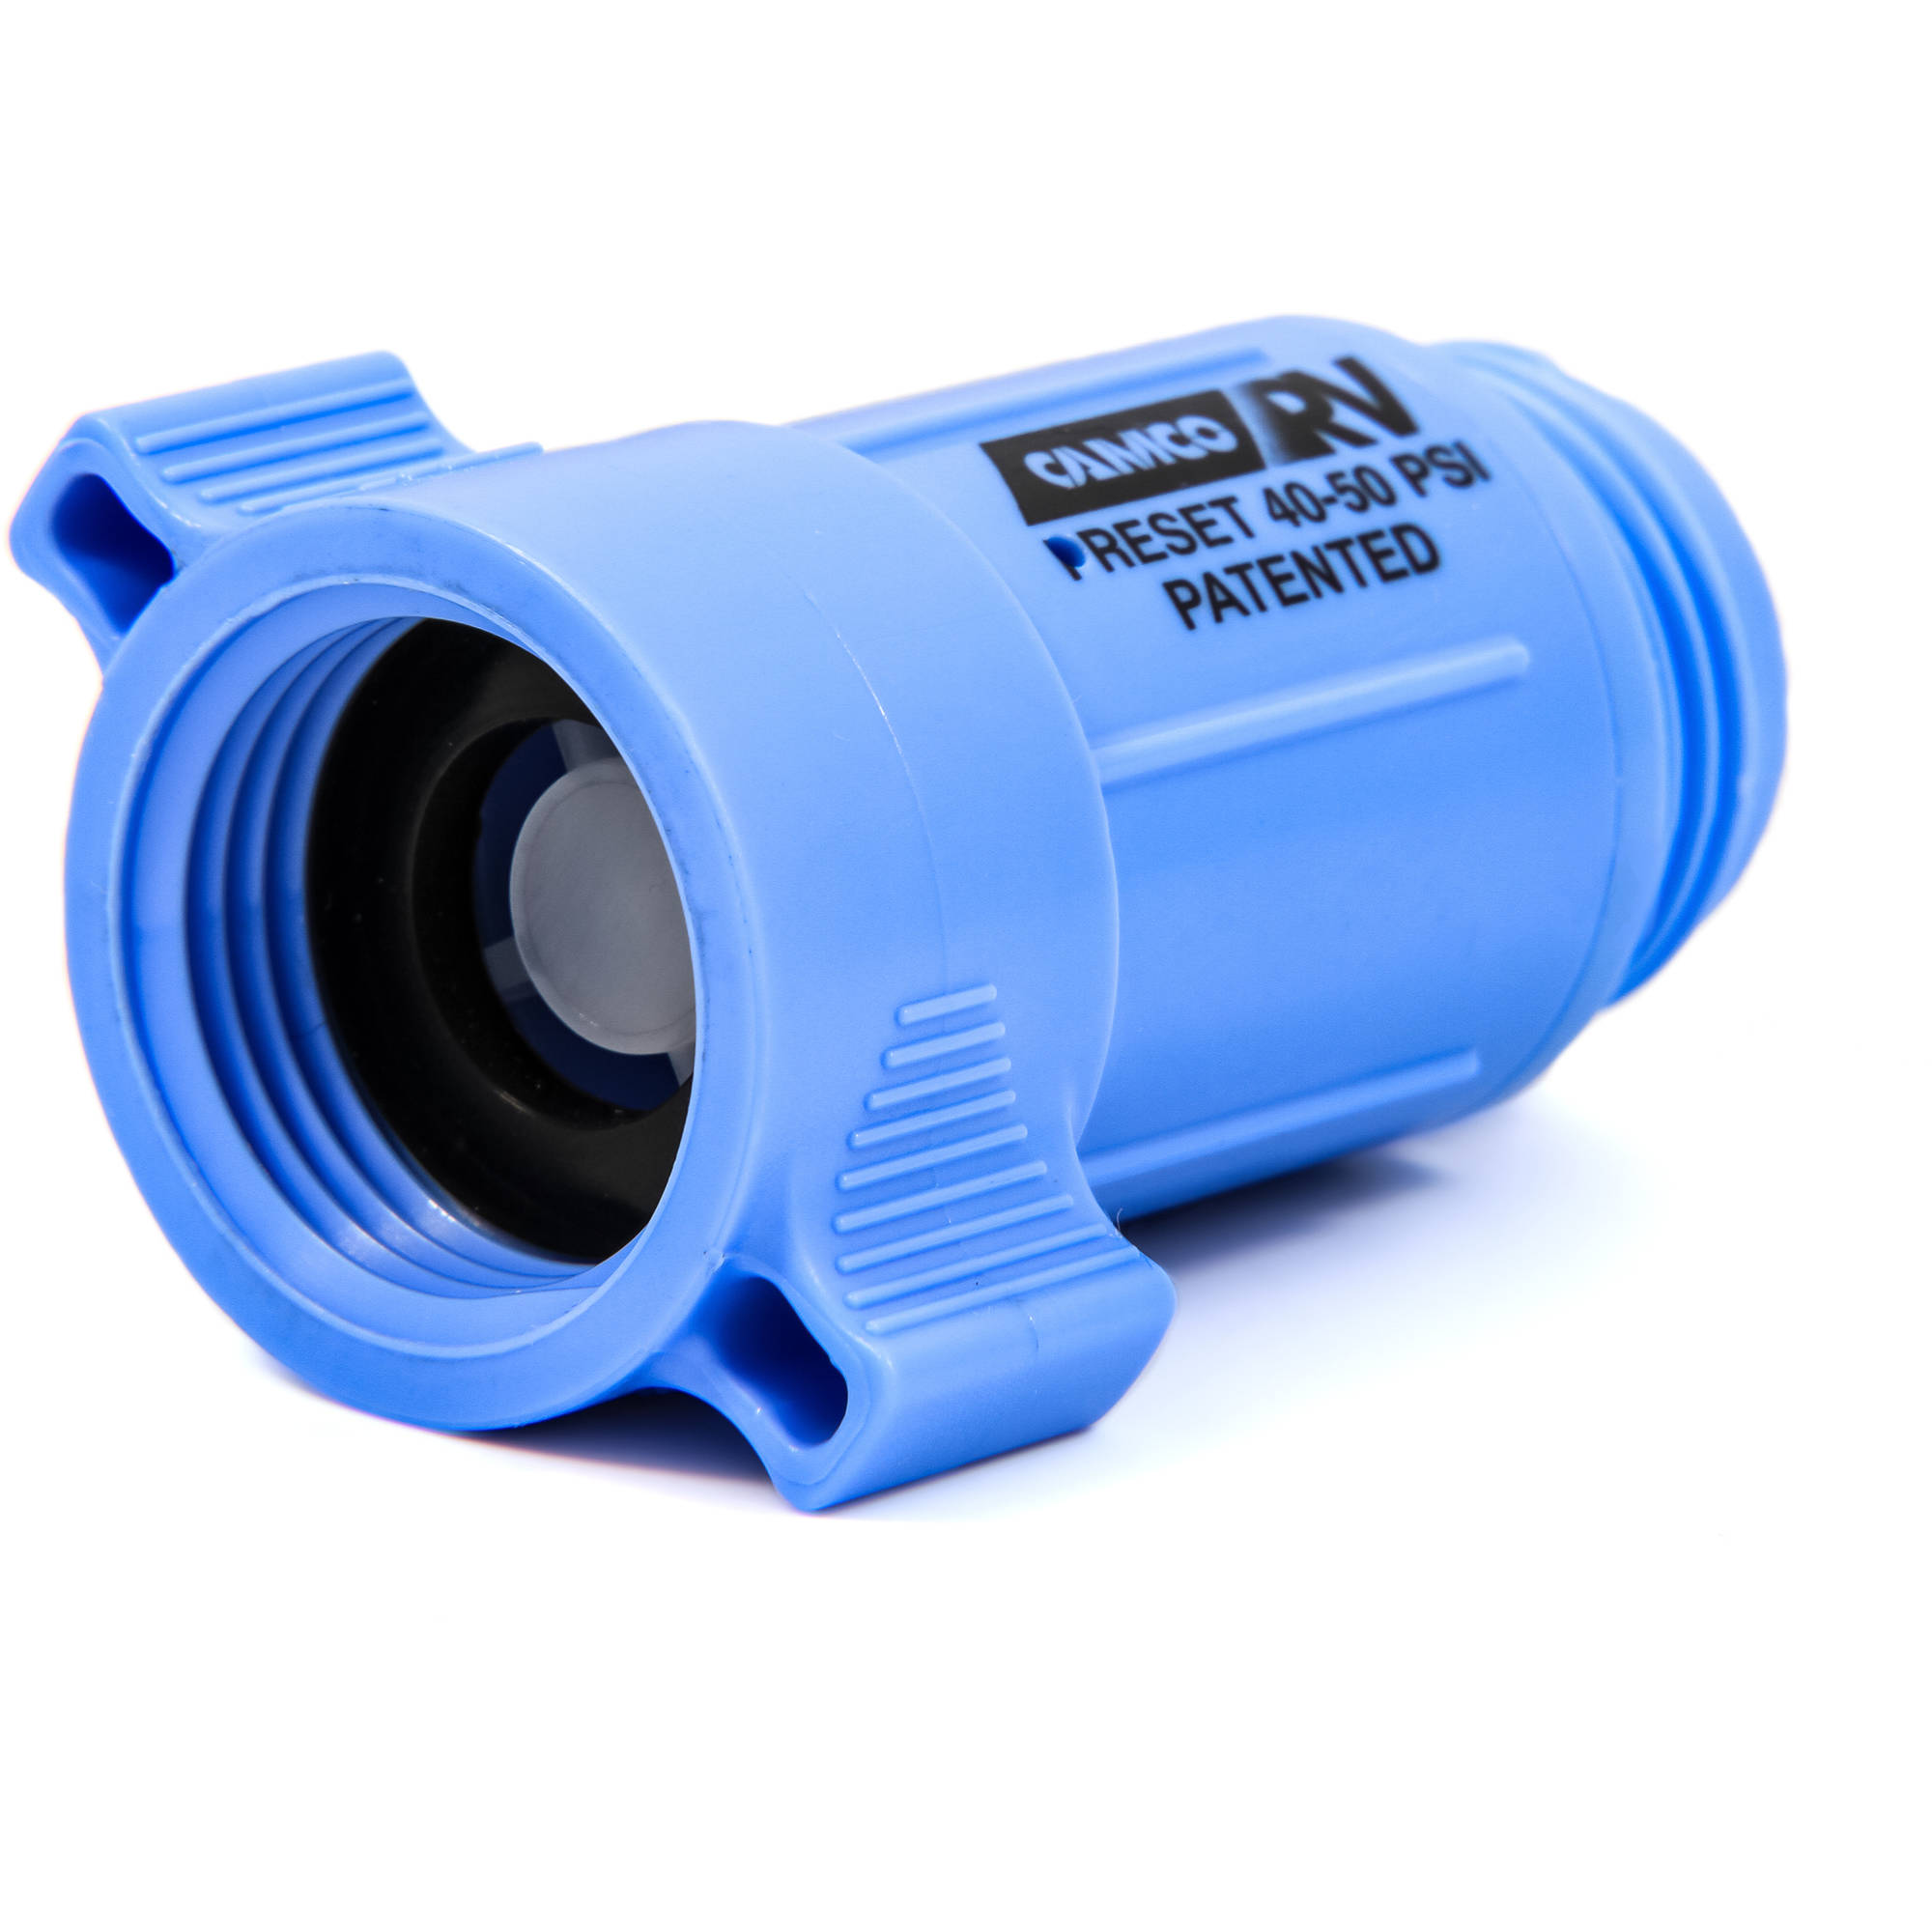 Camco Plastic Water Pressure Regulator - Prevents Damage To RV Water Hoses and Pumps From Inconsistent Water Pressure, Lead Free - (40143)